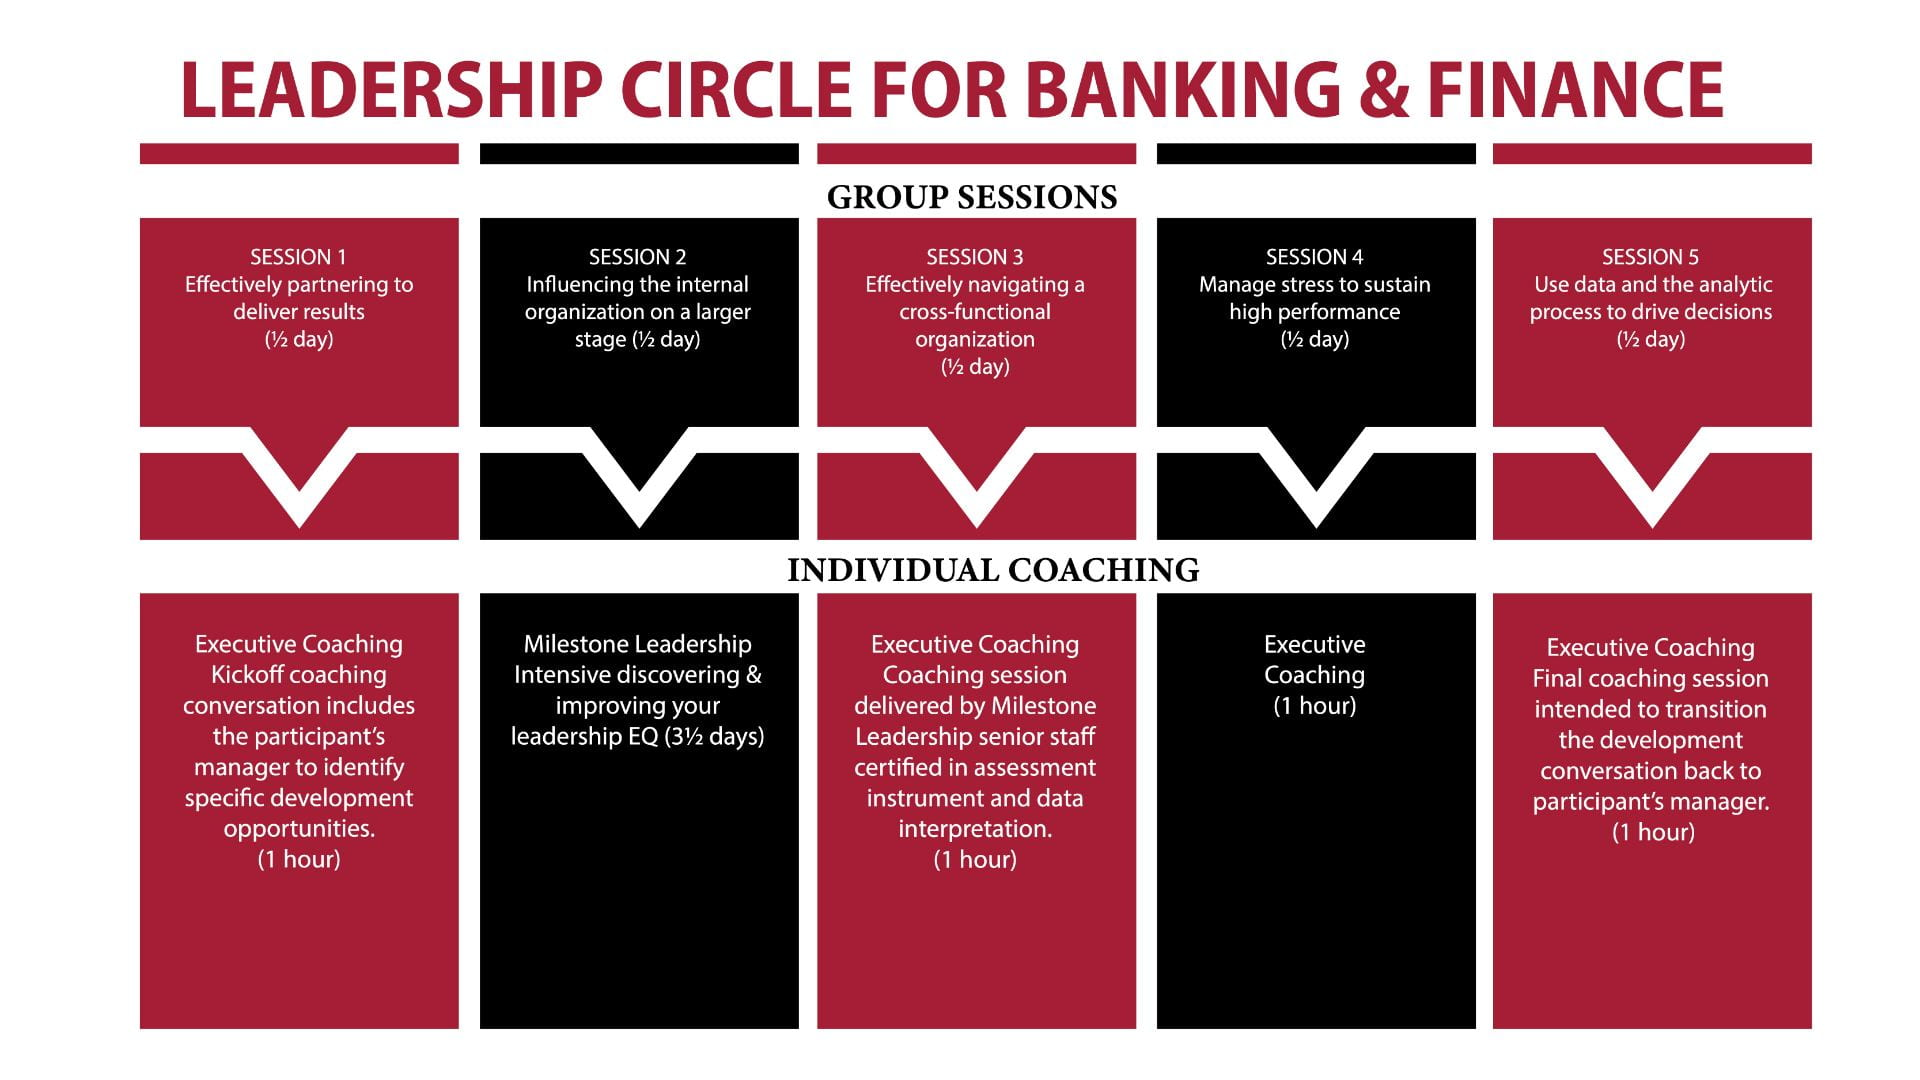 Finance_leadershipcircle_infographic